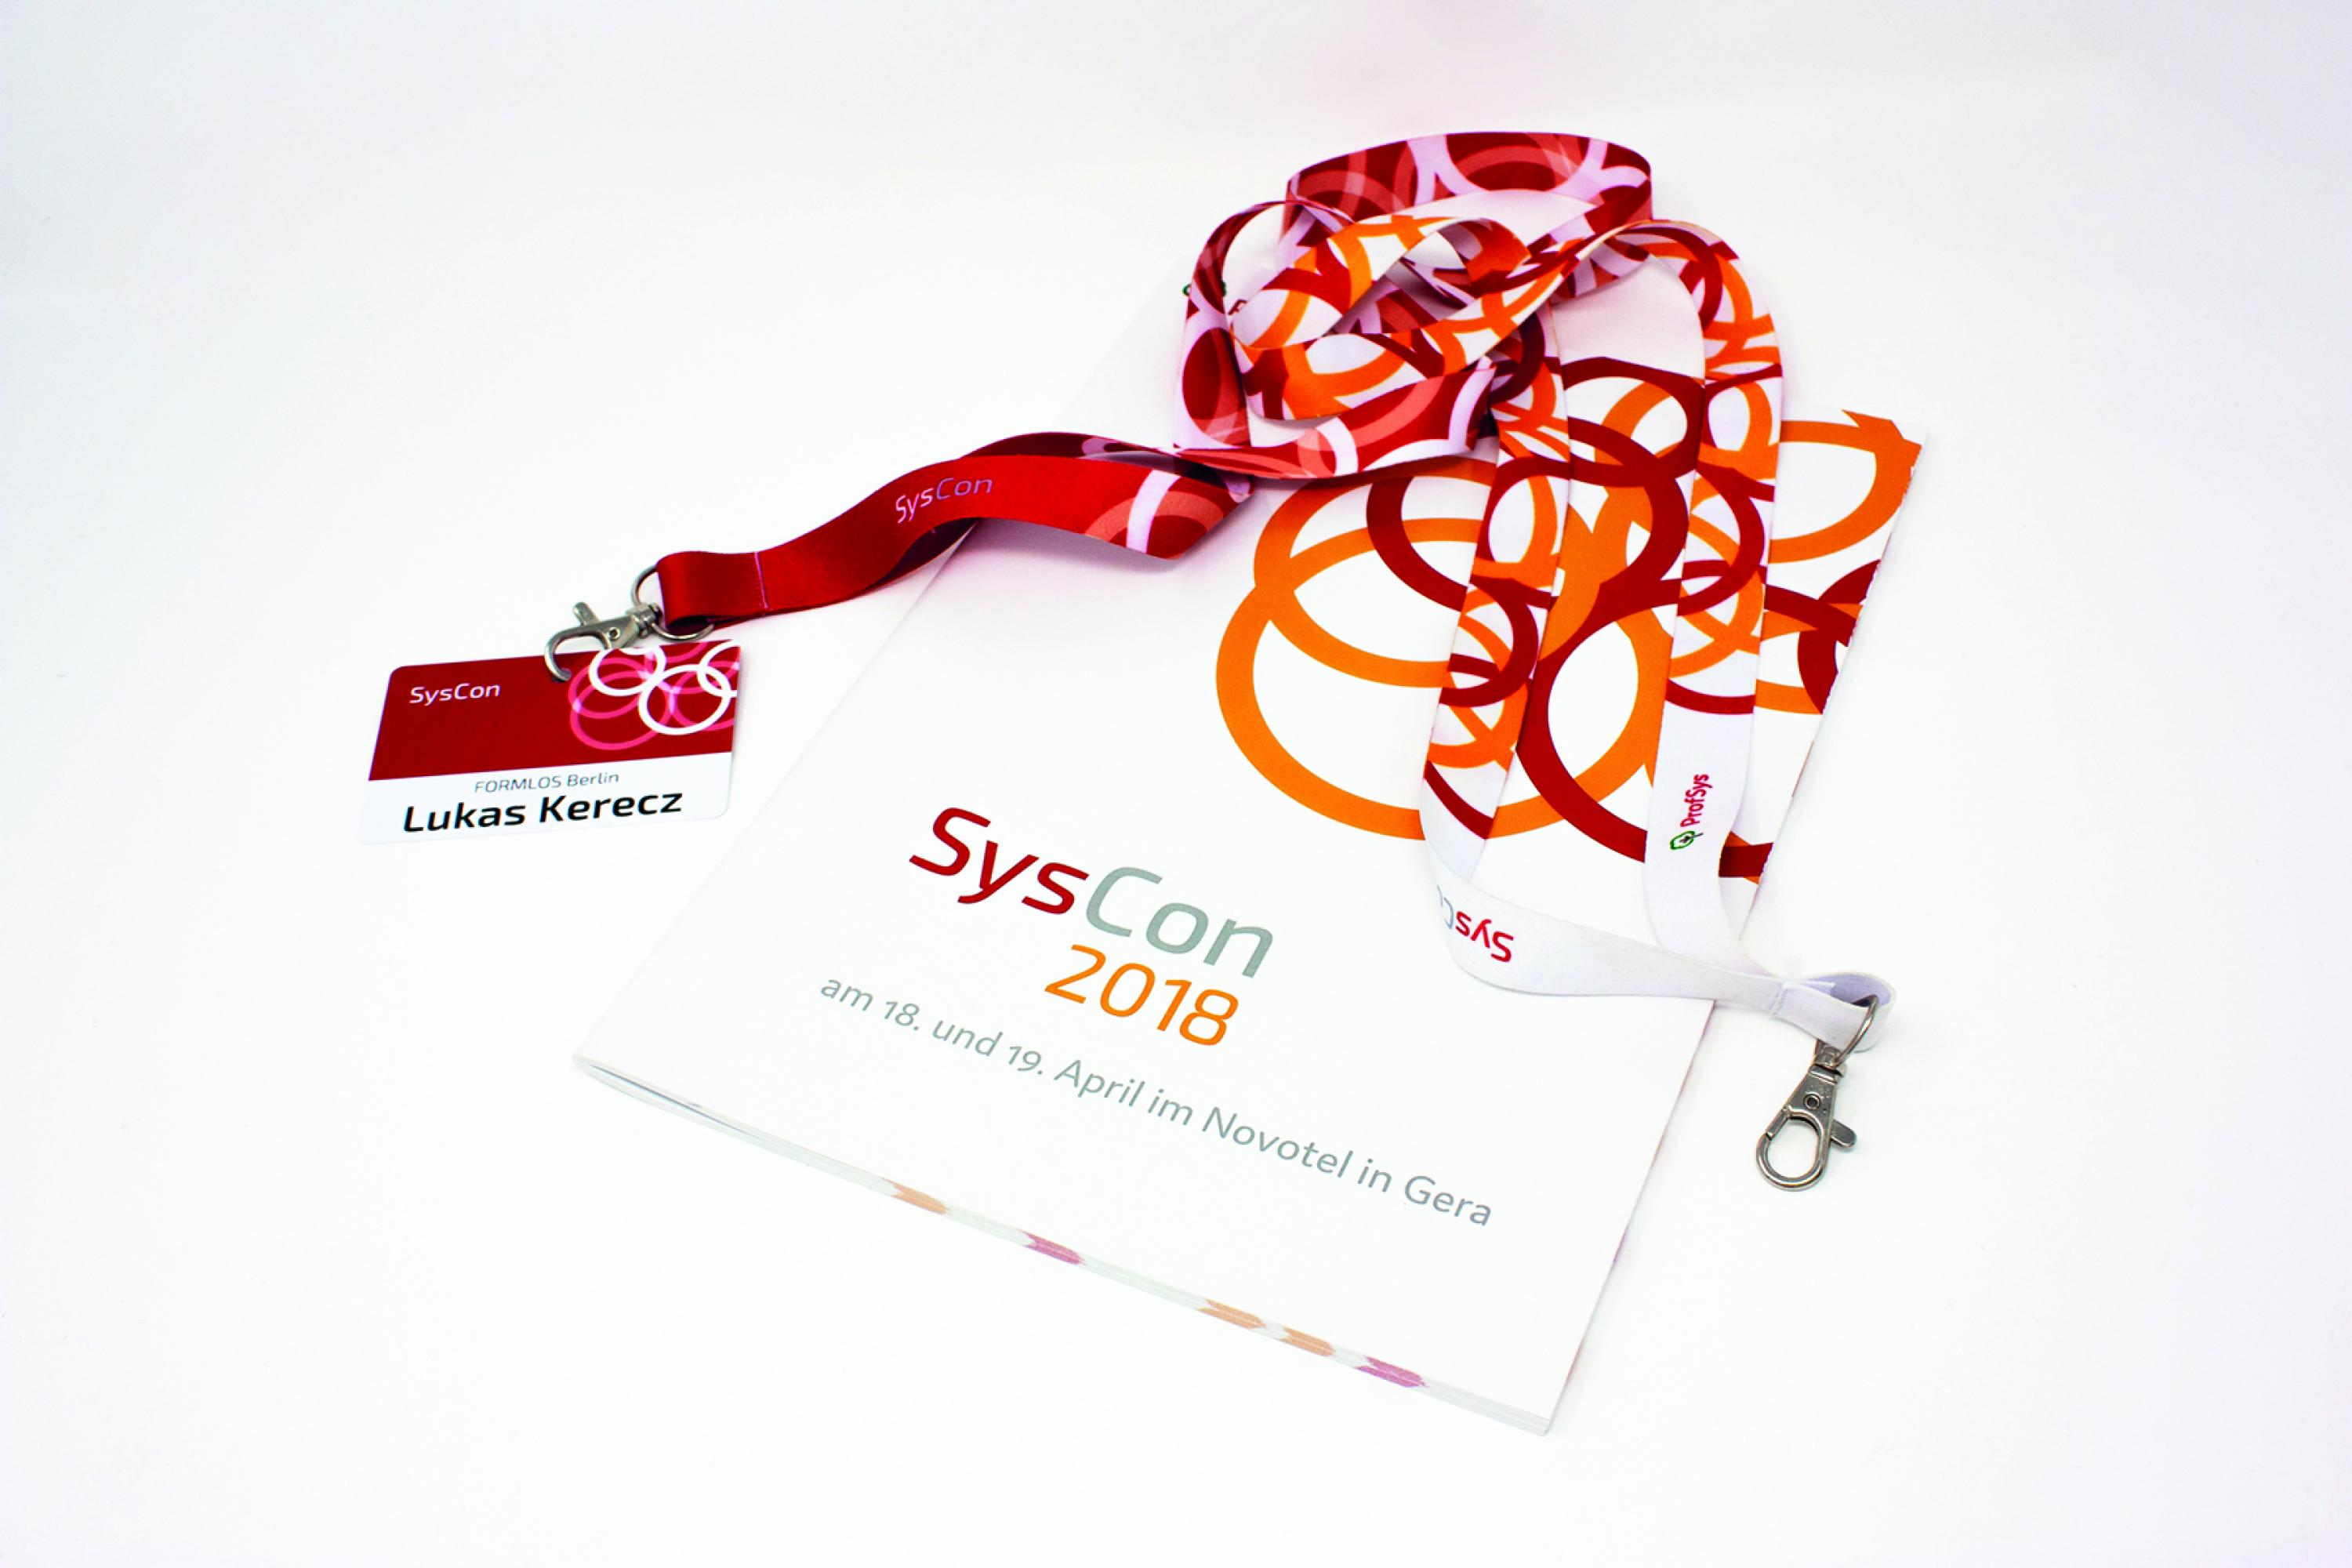 FORMLOS-ProfSys-SysCon2018-Corporate-Design-Print-1